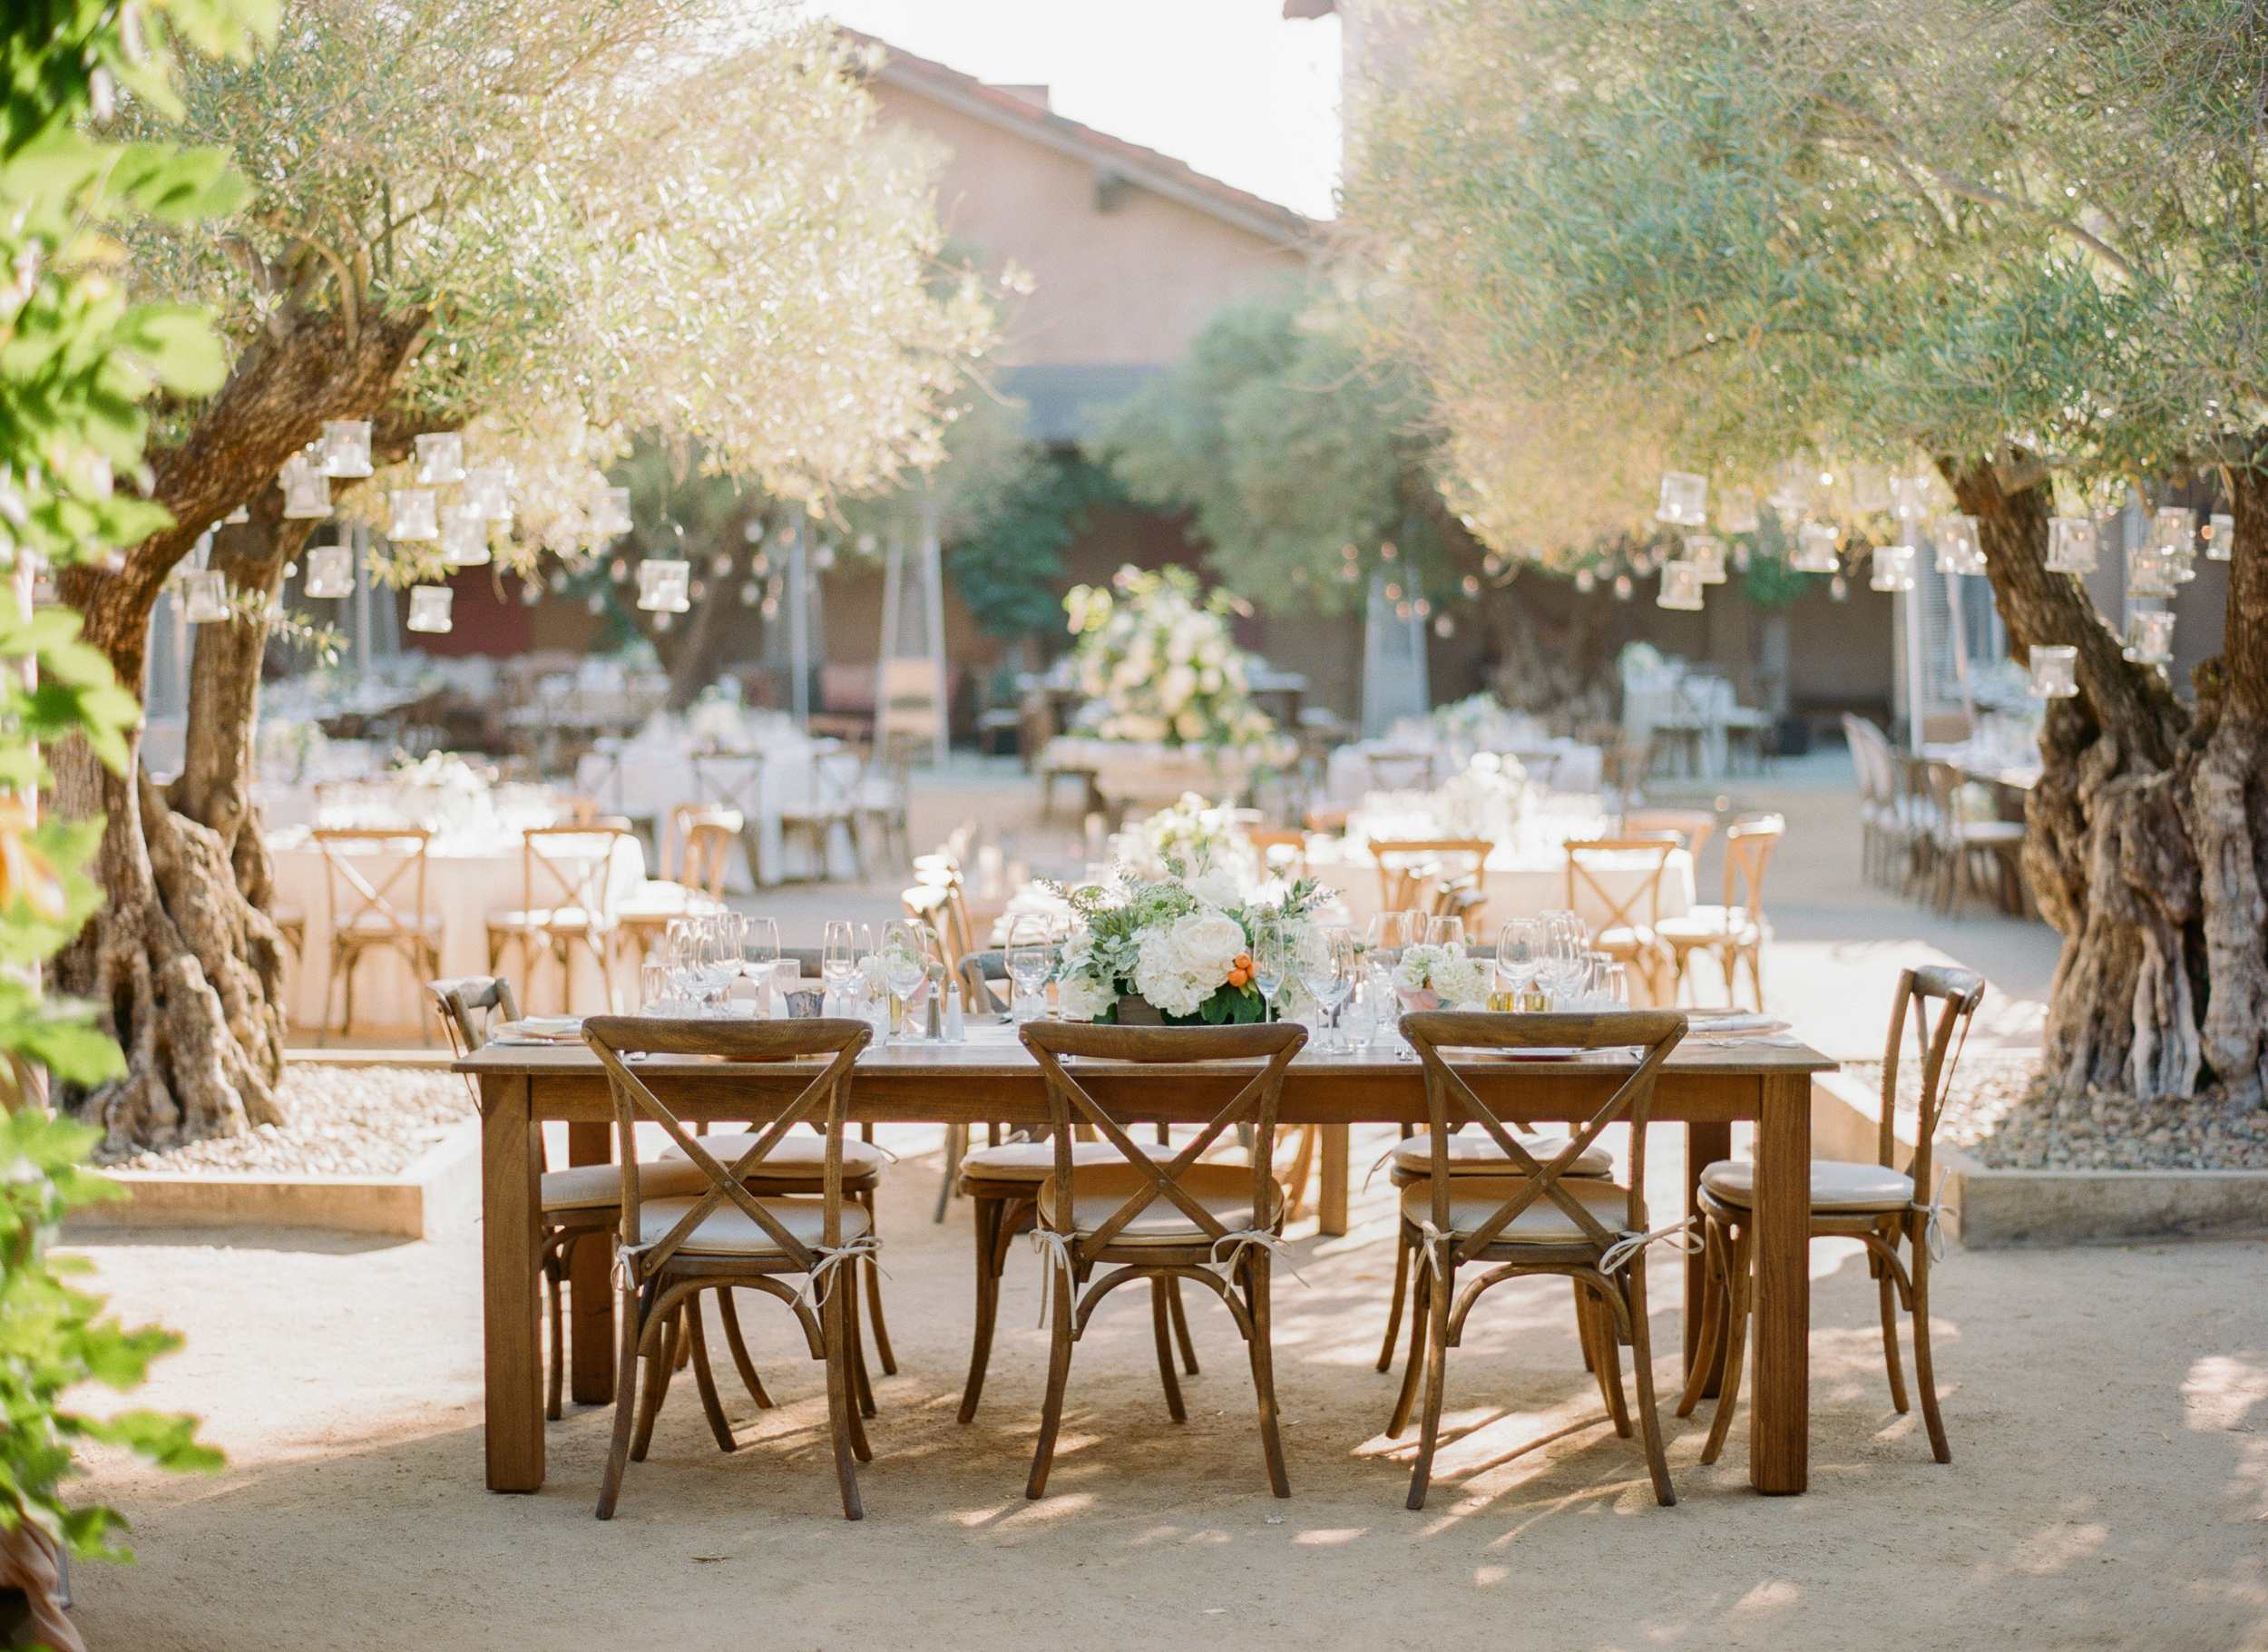 Tables of varying sizes arranged in an olive tree courtyard, a display of Italian vineyard elegance; photo by Sylvie Gil